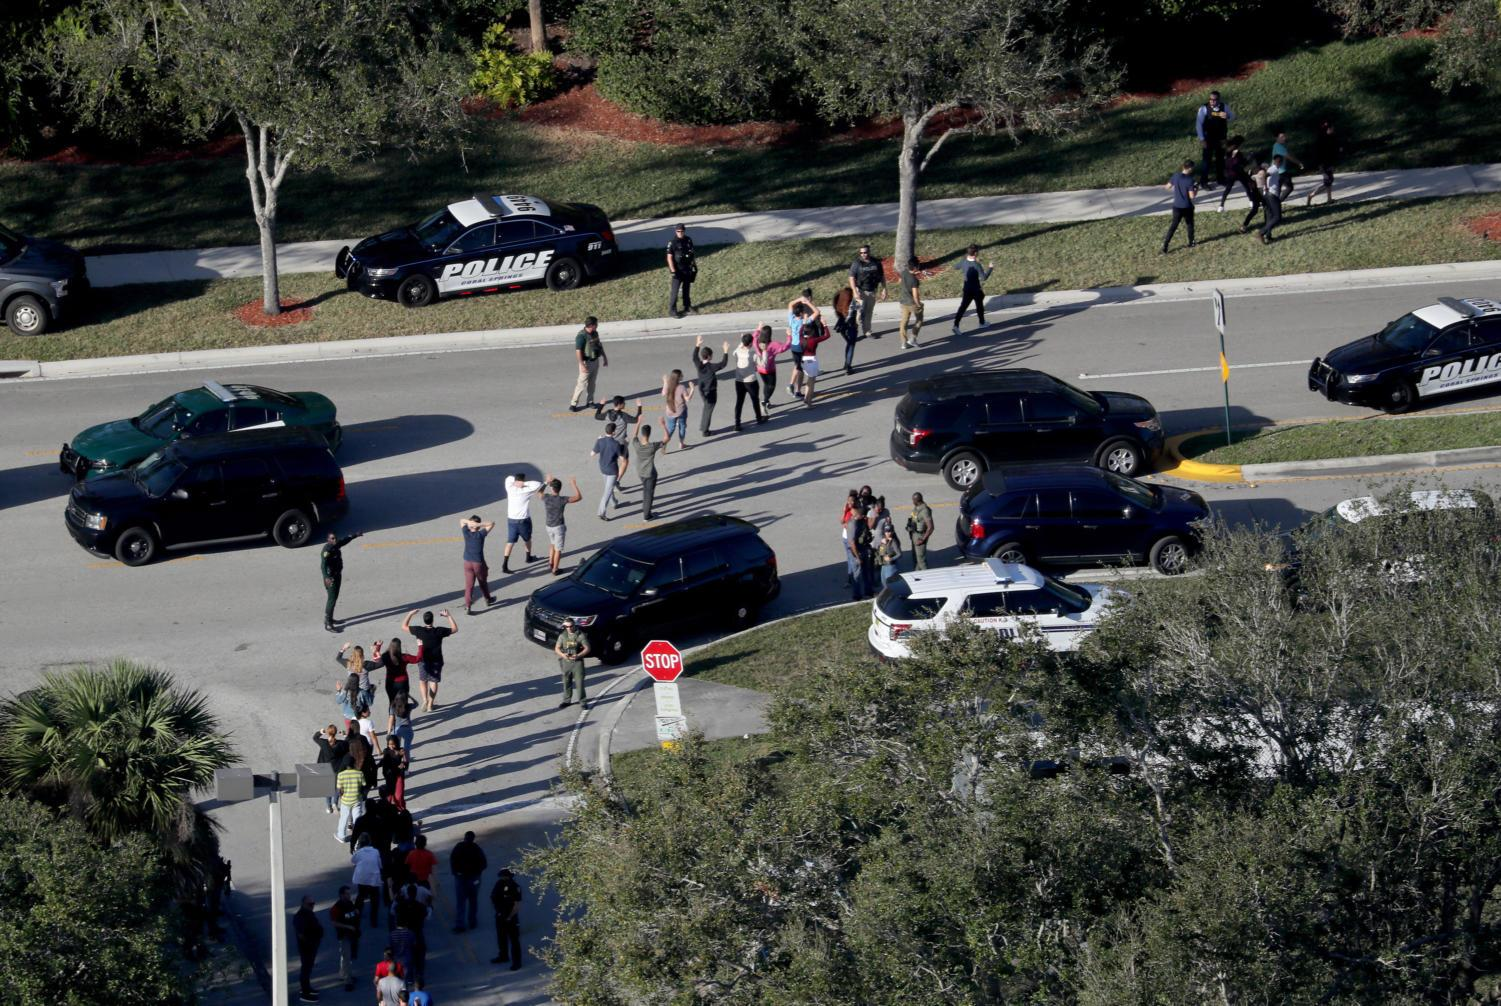 Students are evacuated by police out of Stoneman Douglas High School in Parkland, Fla., after a shooting on February 14, 2018. (Mike Stocker/Sun Sentinel/TNS)